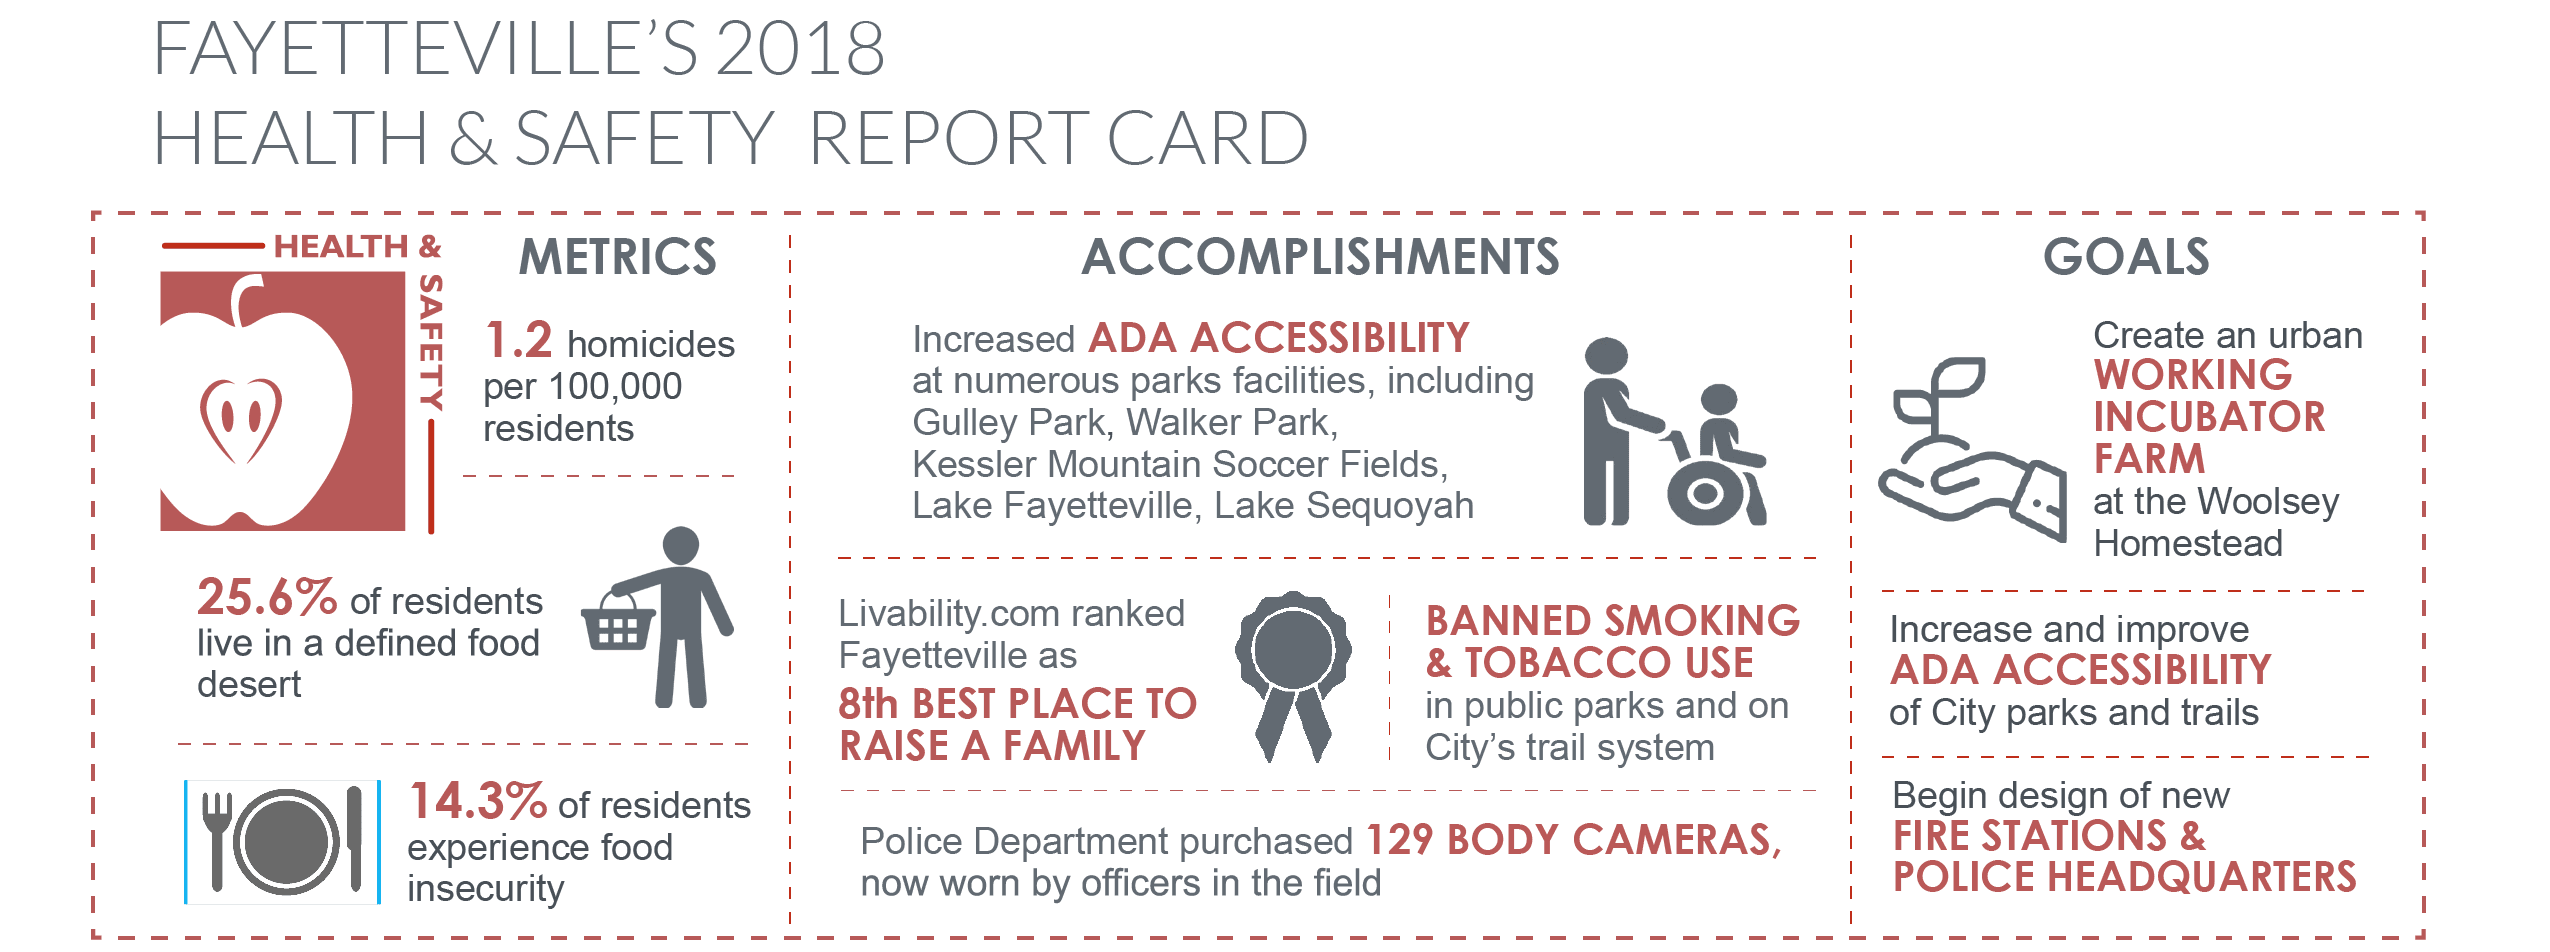 Health and Safety Report Card 2018